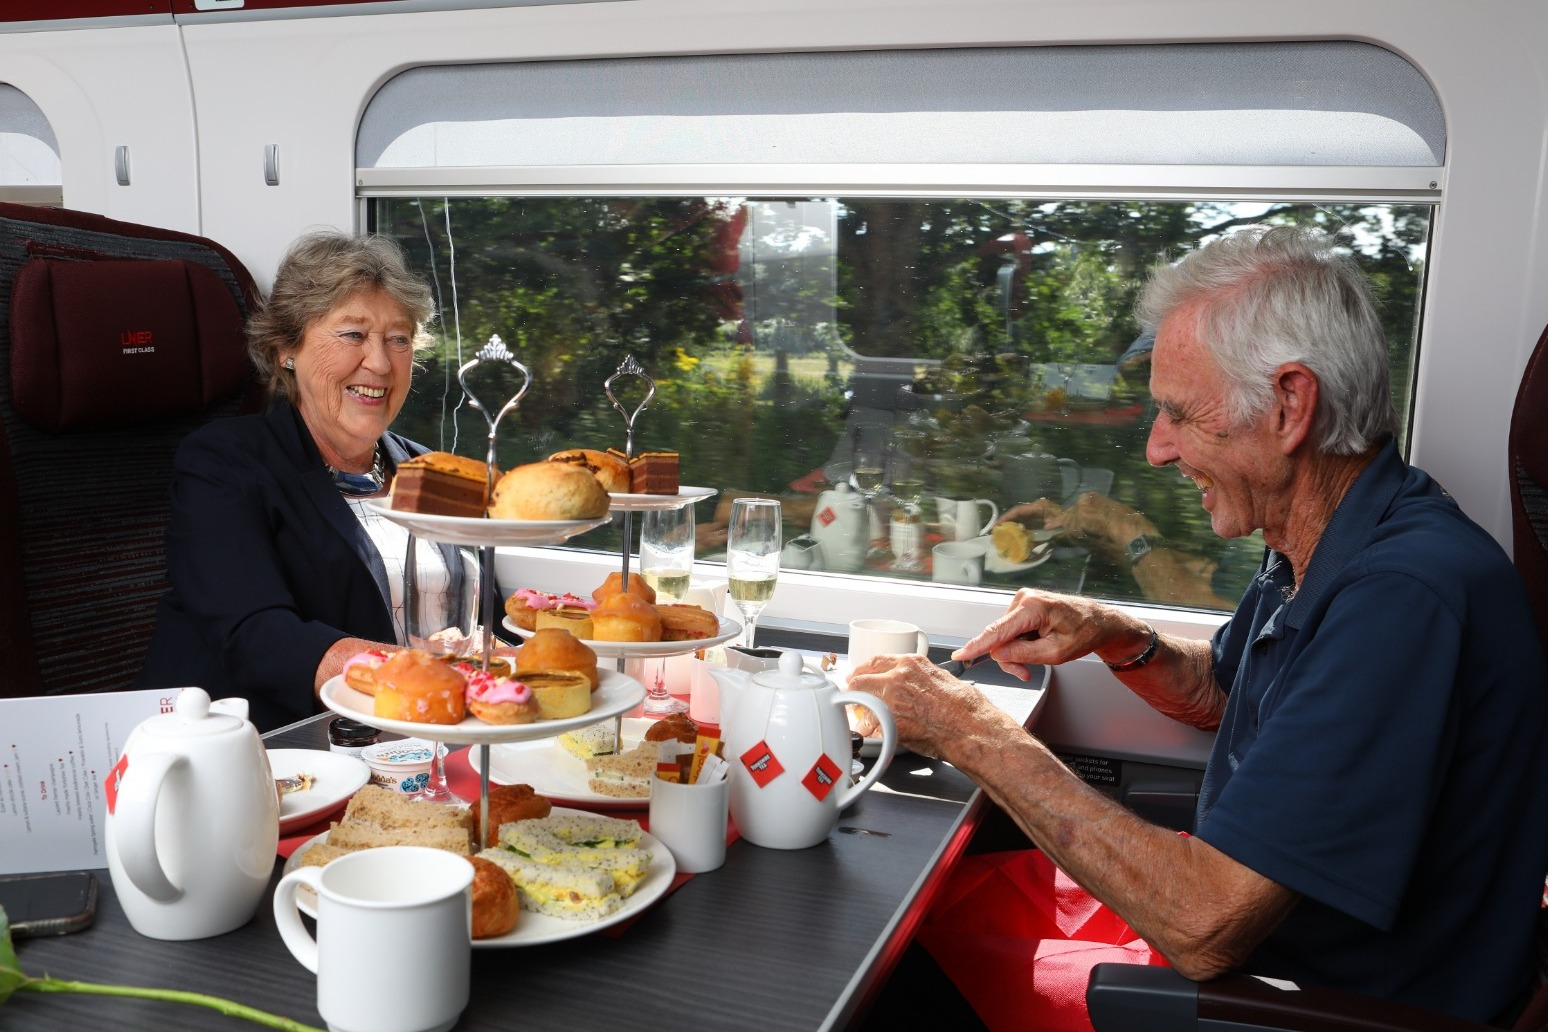 The train now arriving will be happy to serve you afternoon tea